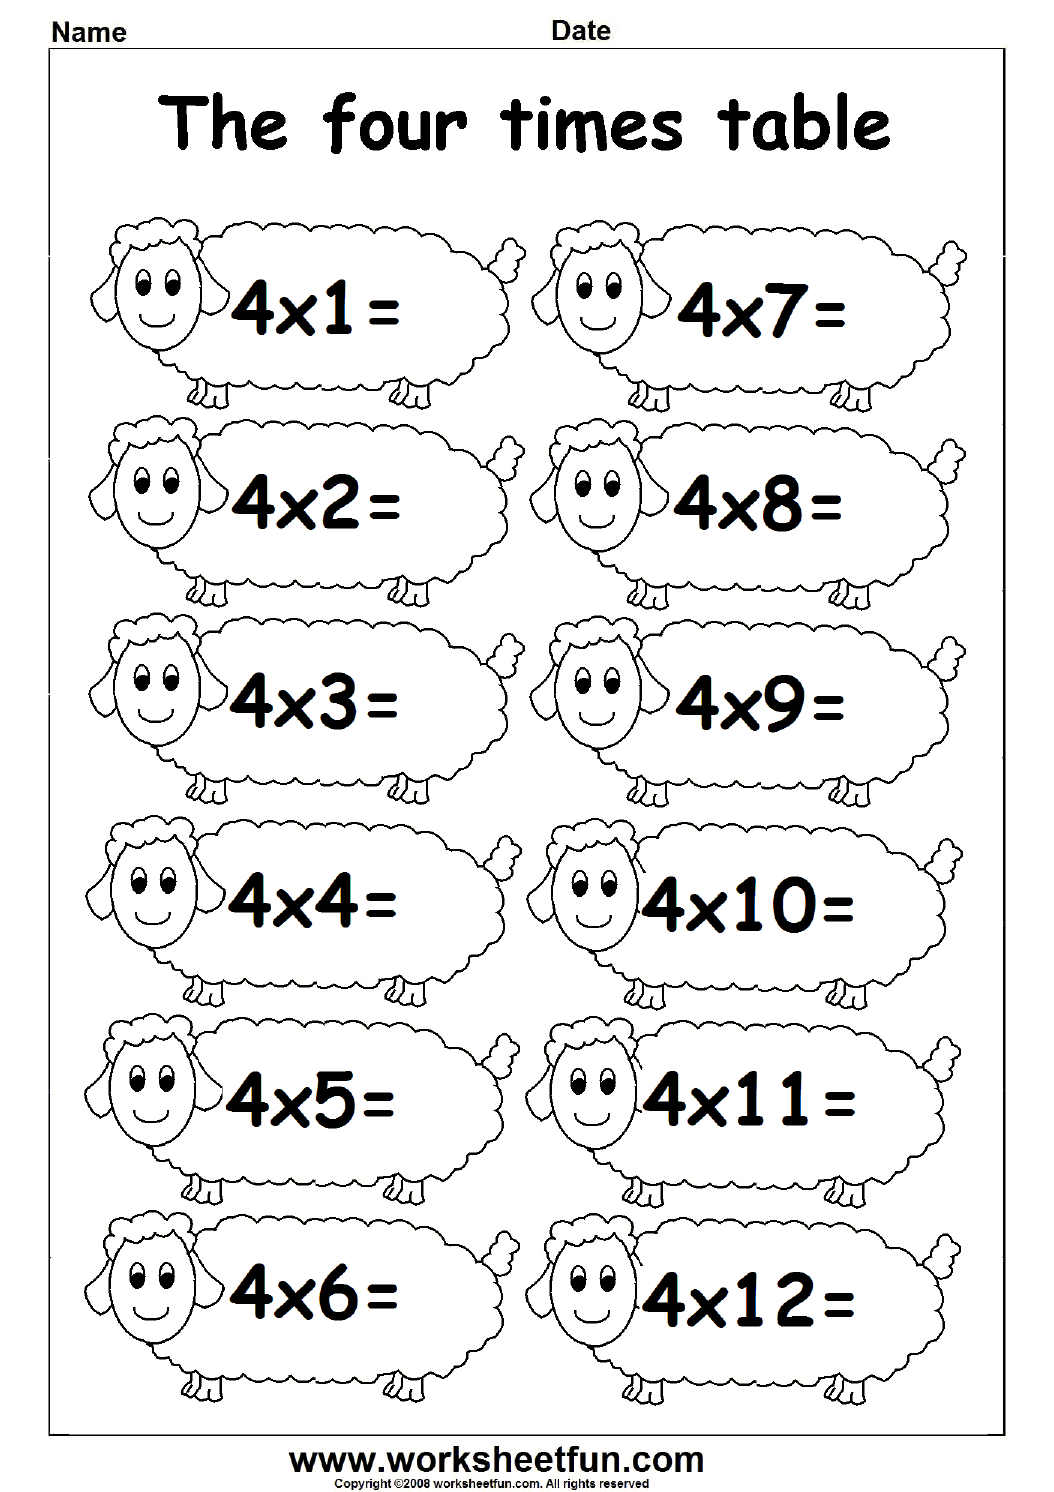 Fun Times Table Worksheets - 2, 3 & 4 | Fichas De Exercã­cios